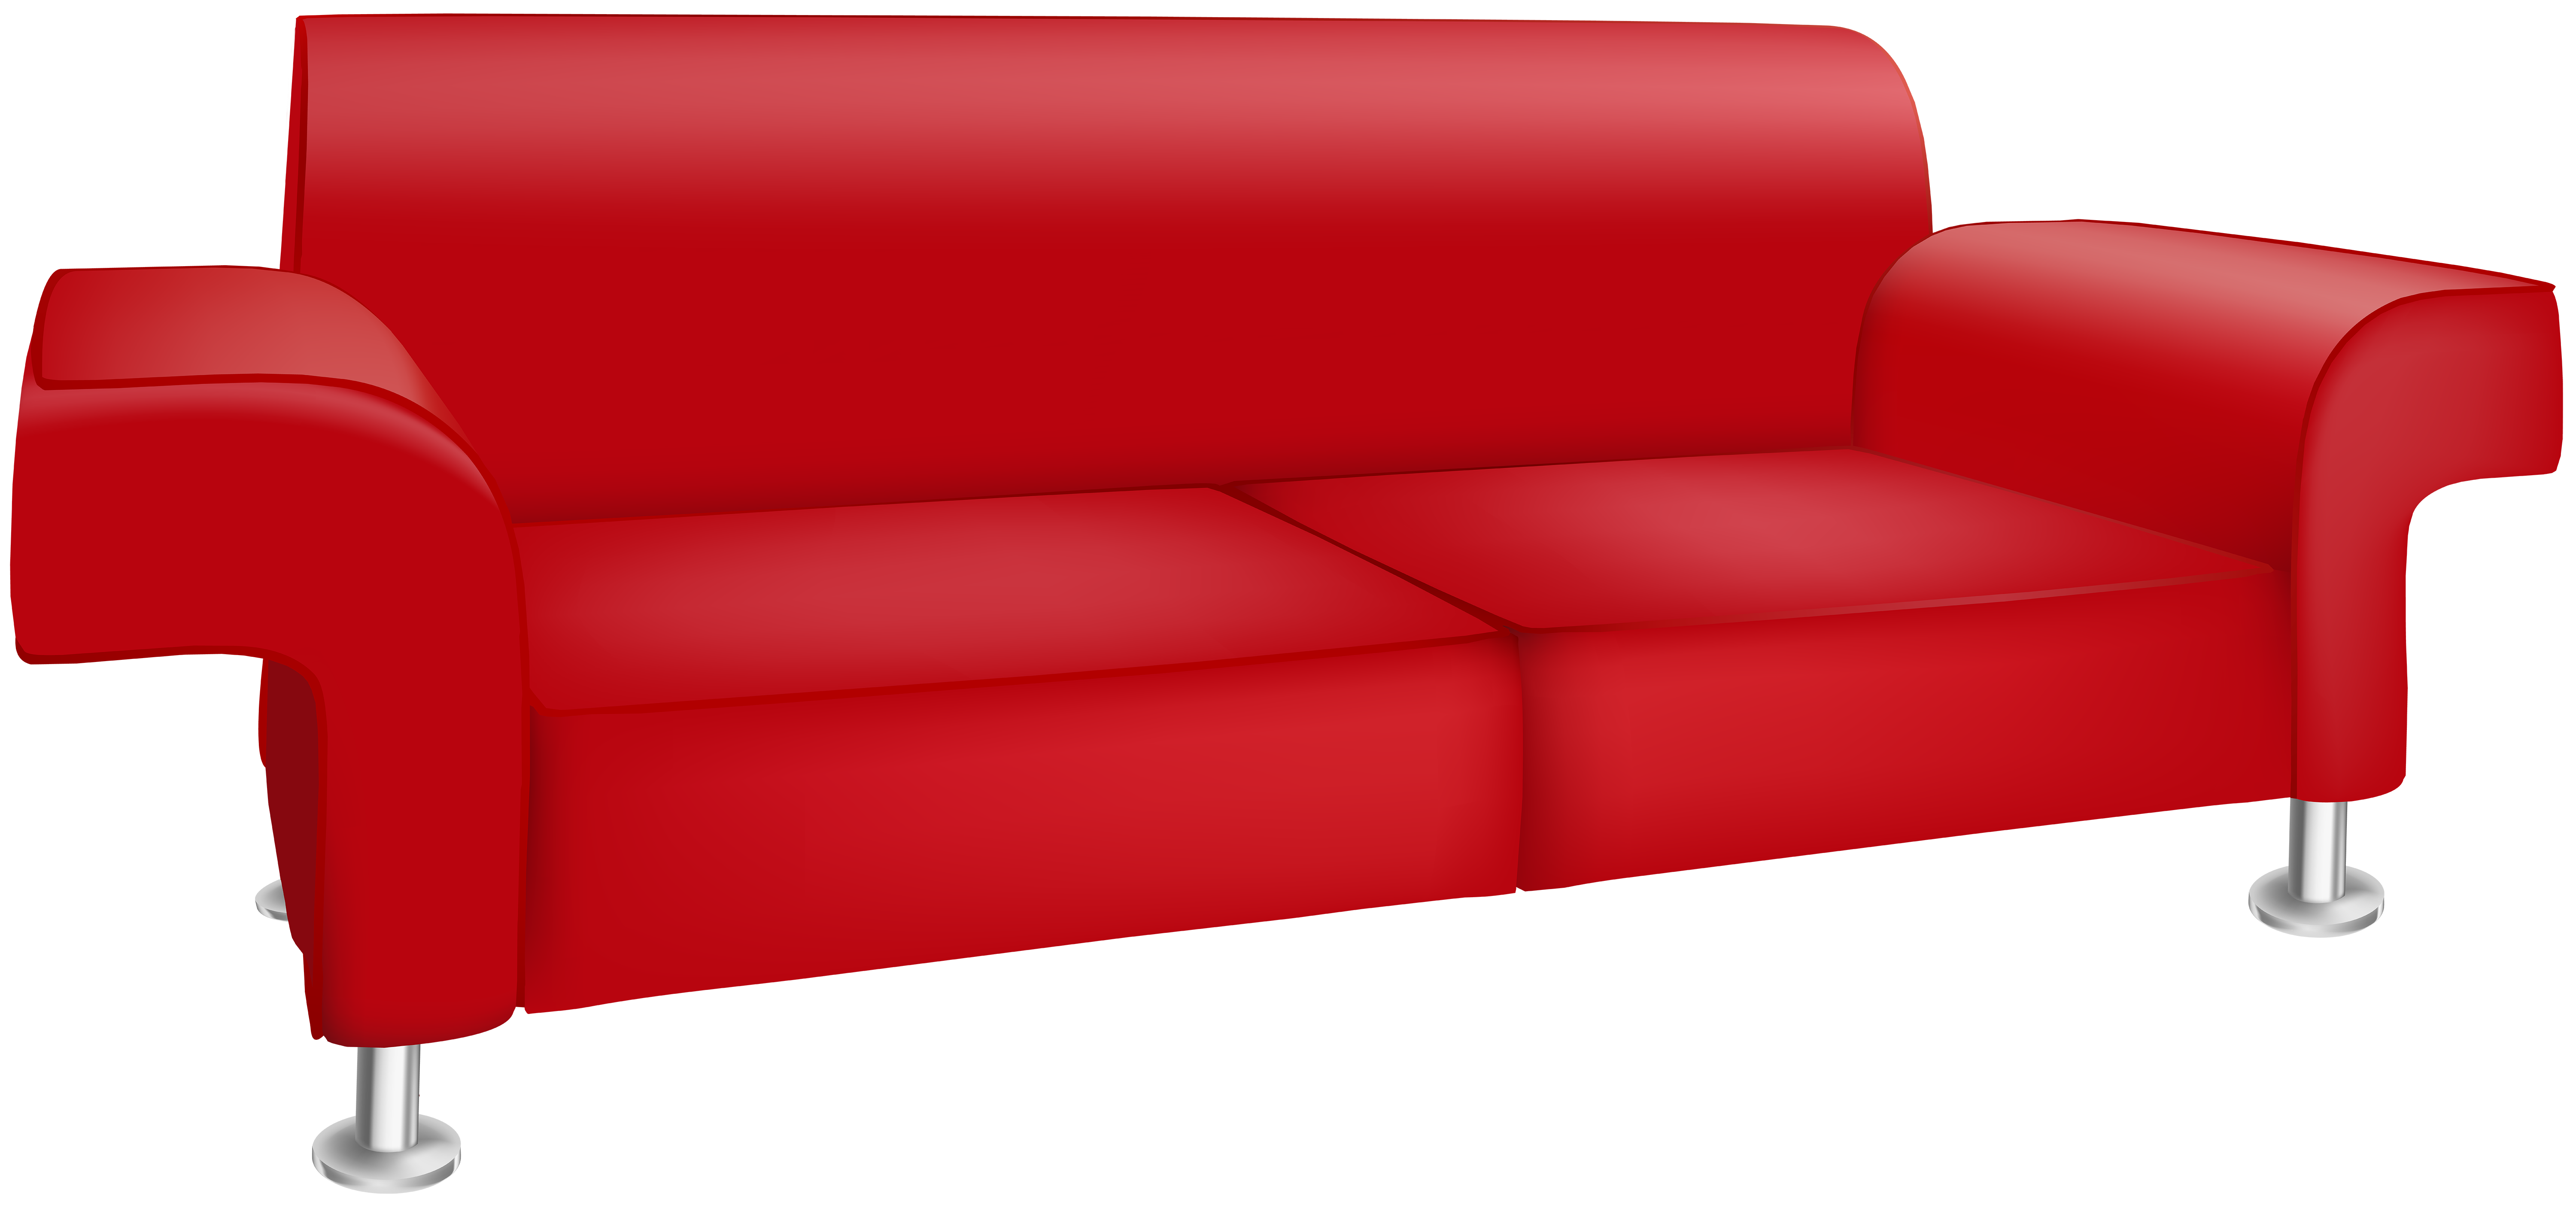 Furniture clipart red couch. Sofa bed table chair